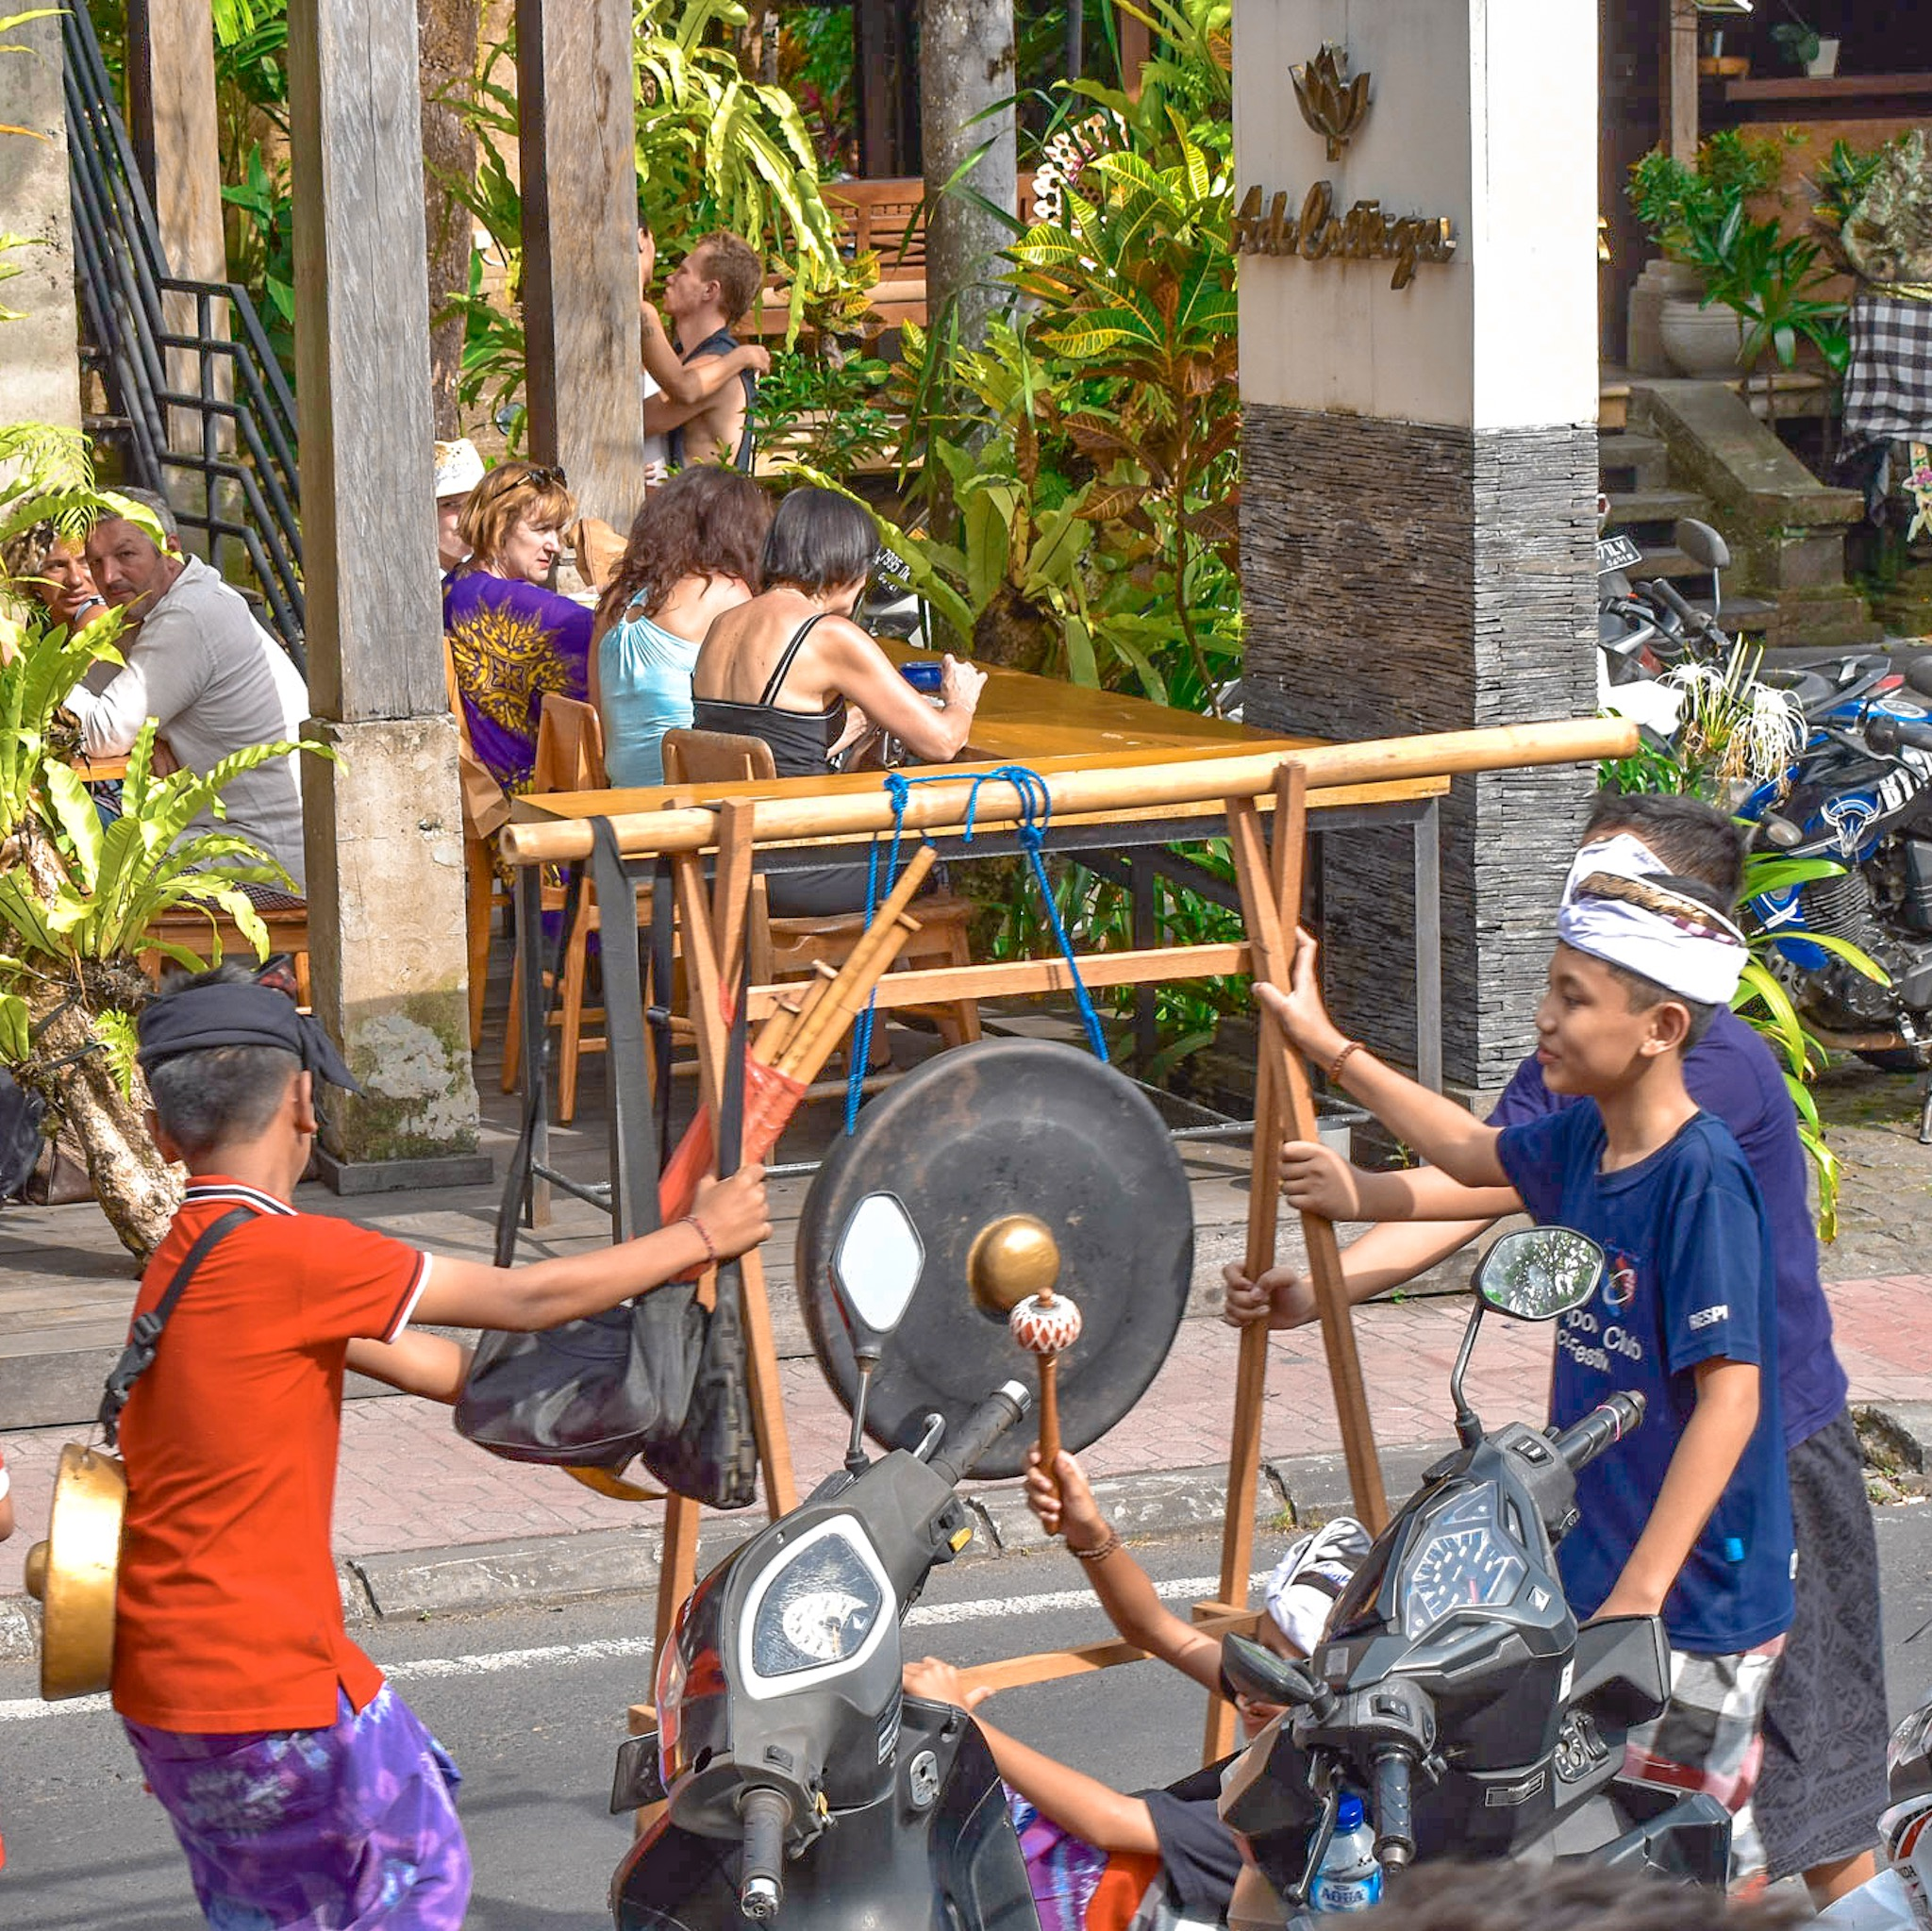 Children Celebrate Galungan Day in Bali, Indonesia